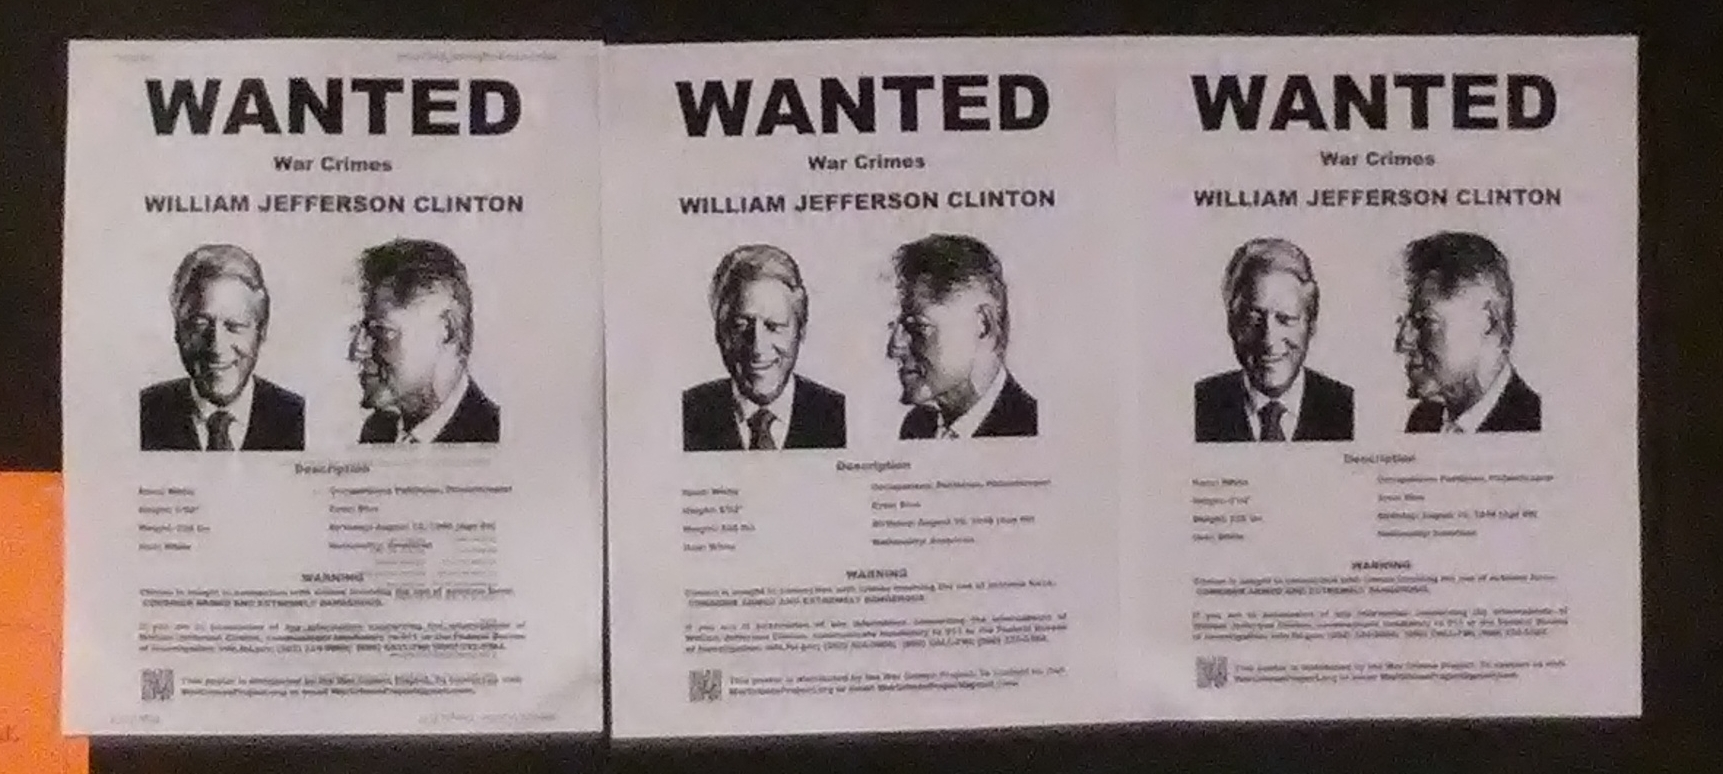 Wanted posters hanging in a hallway.